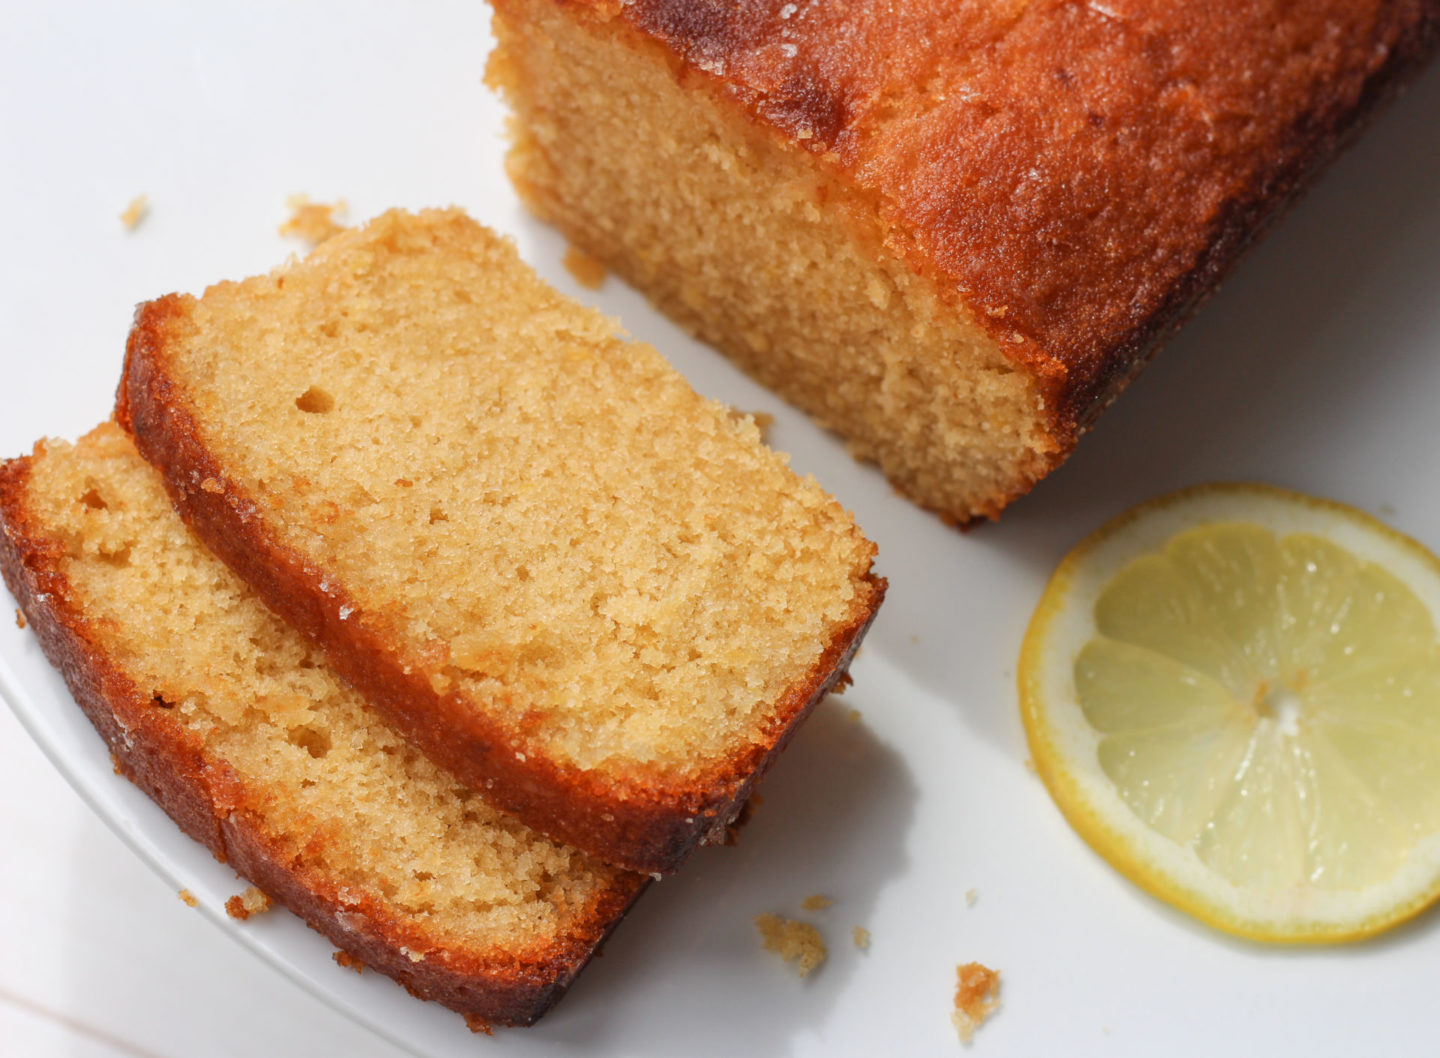 shot from above of sliced lemon drizzle loaf cake